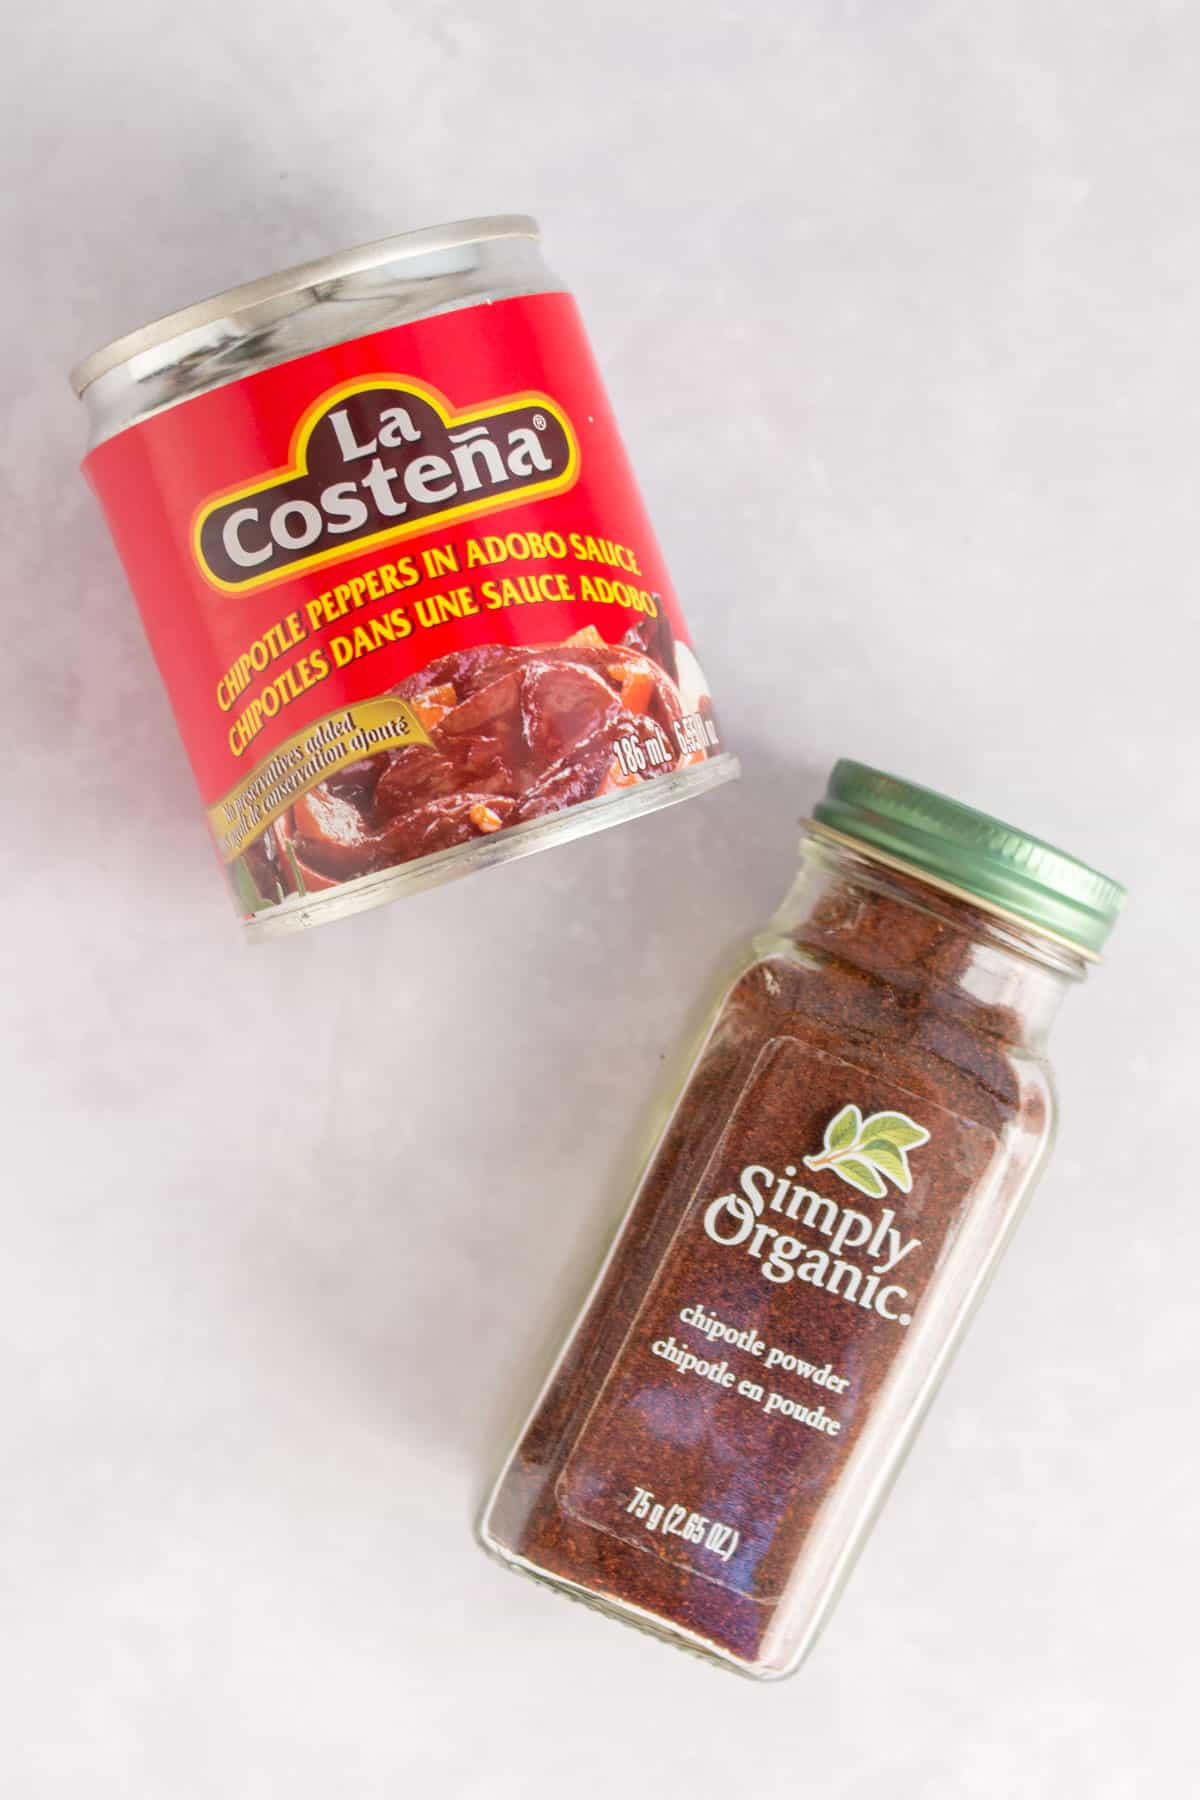 chipotle powder and chipotle peppers in adobo sauce.